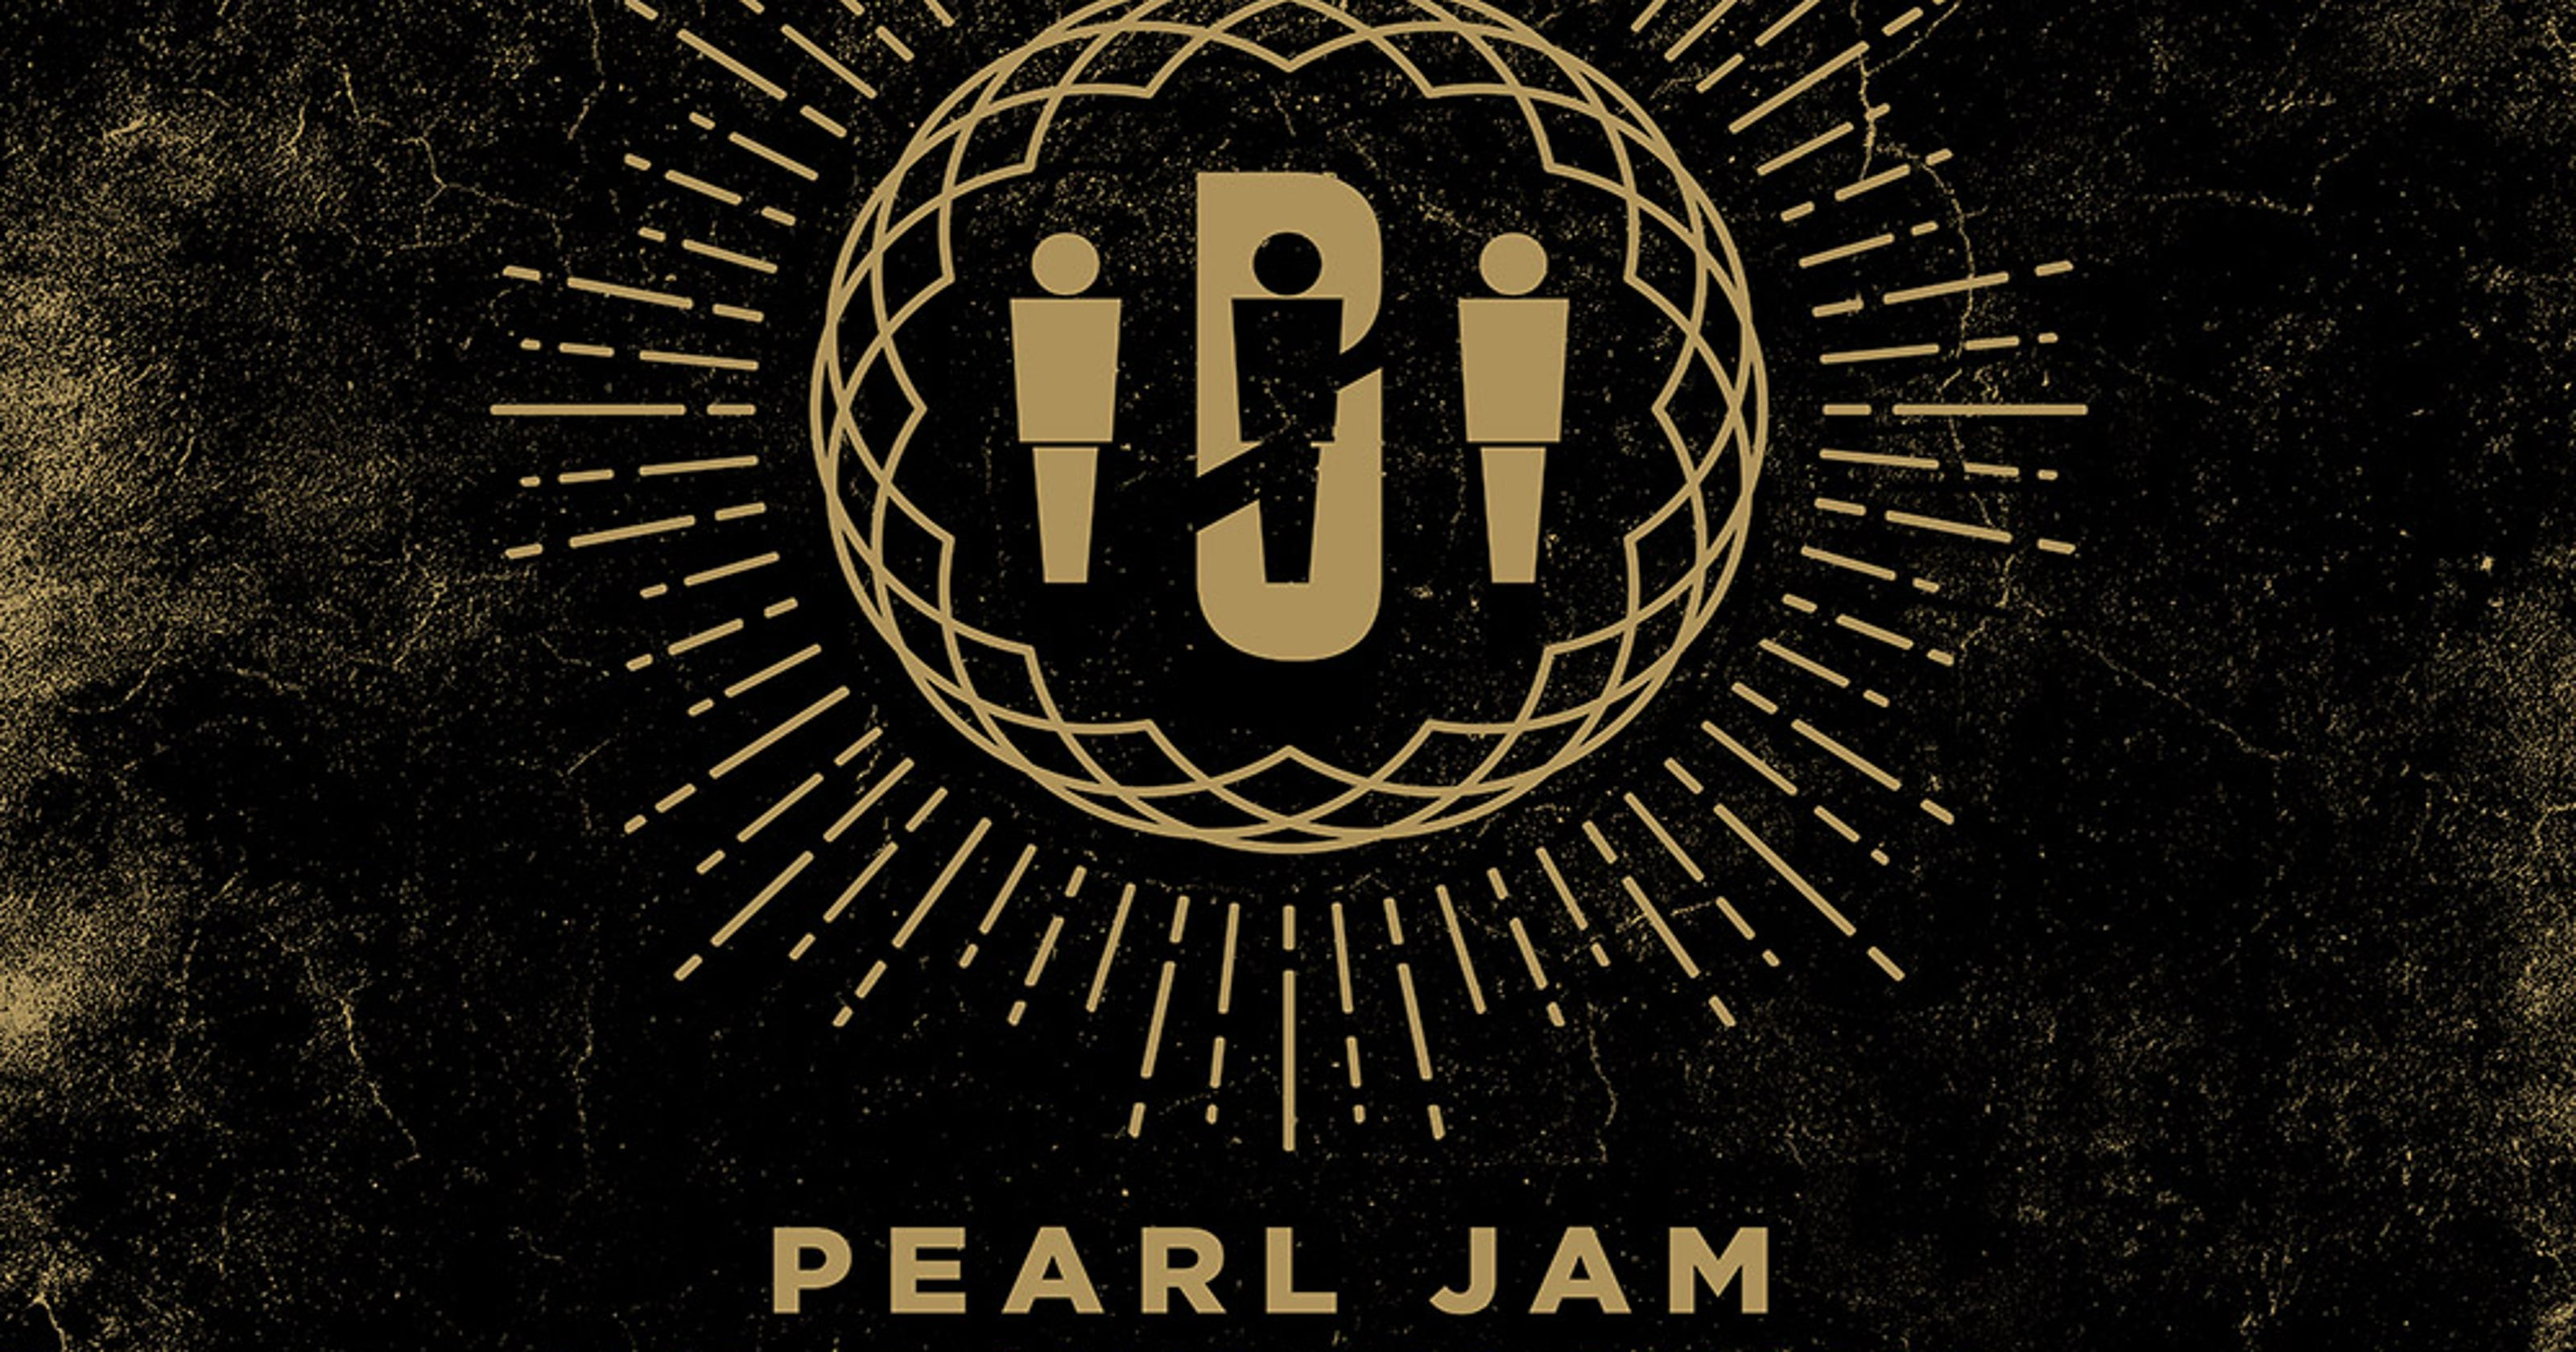 Pearl Jam plays exclusive show at Nashville's Third Man Records